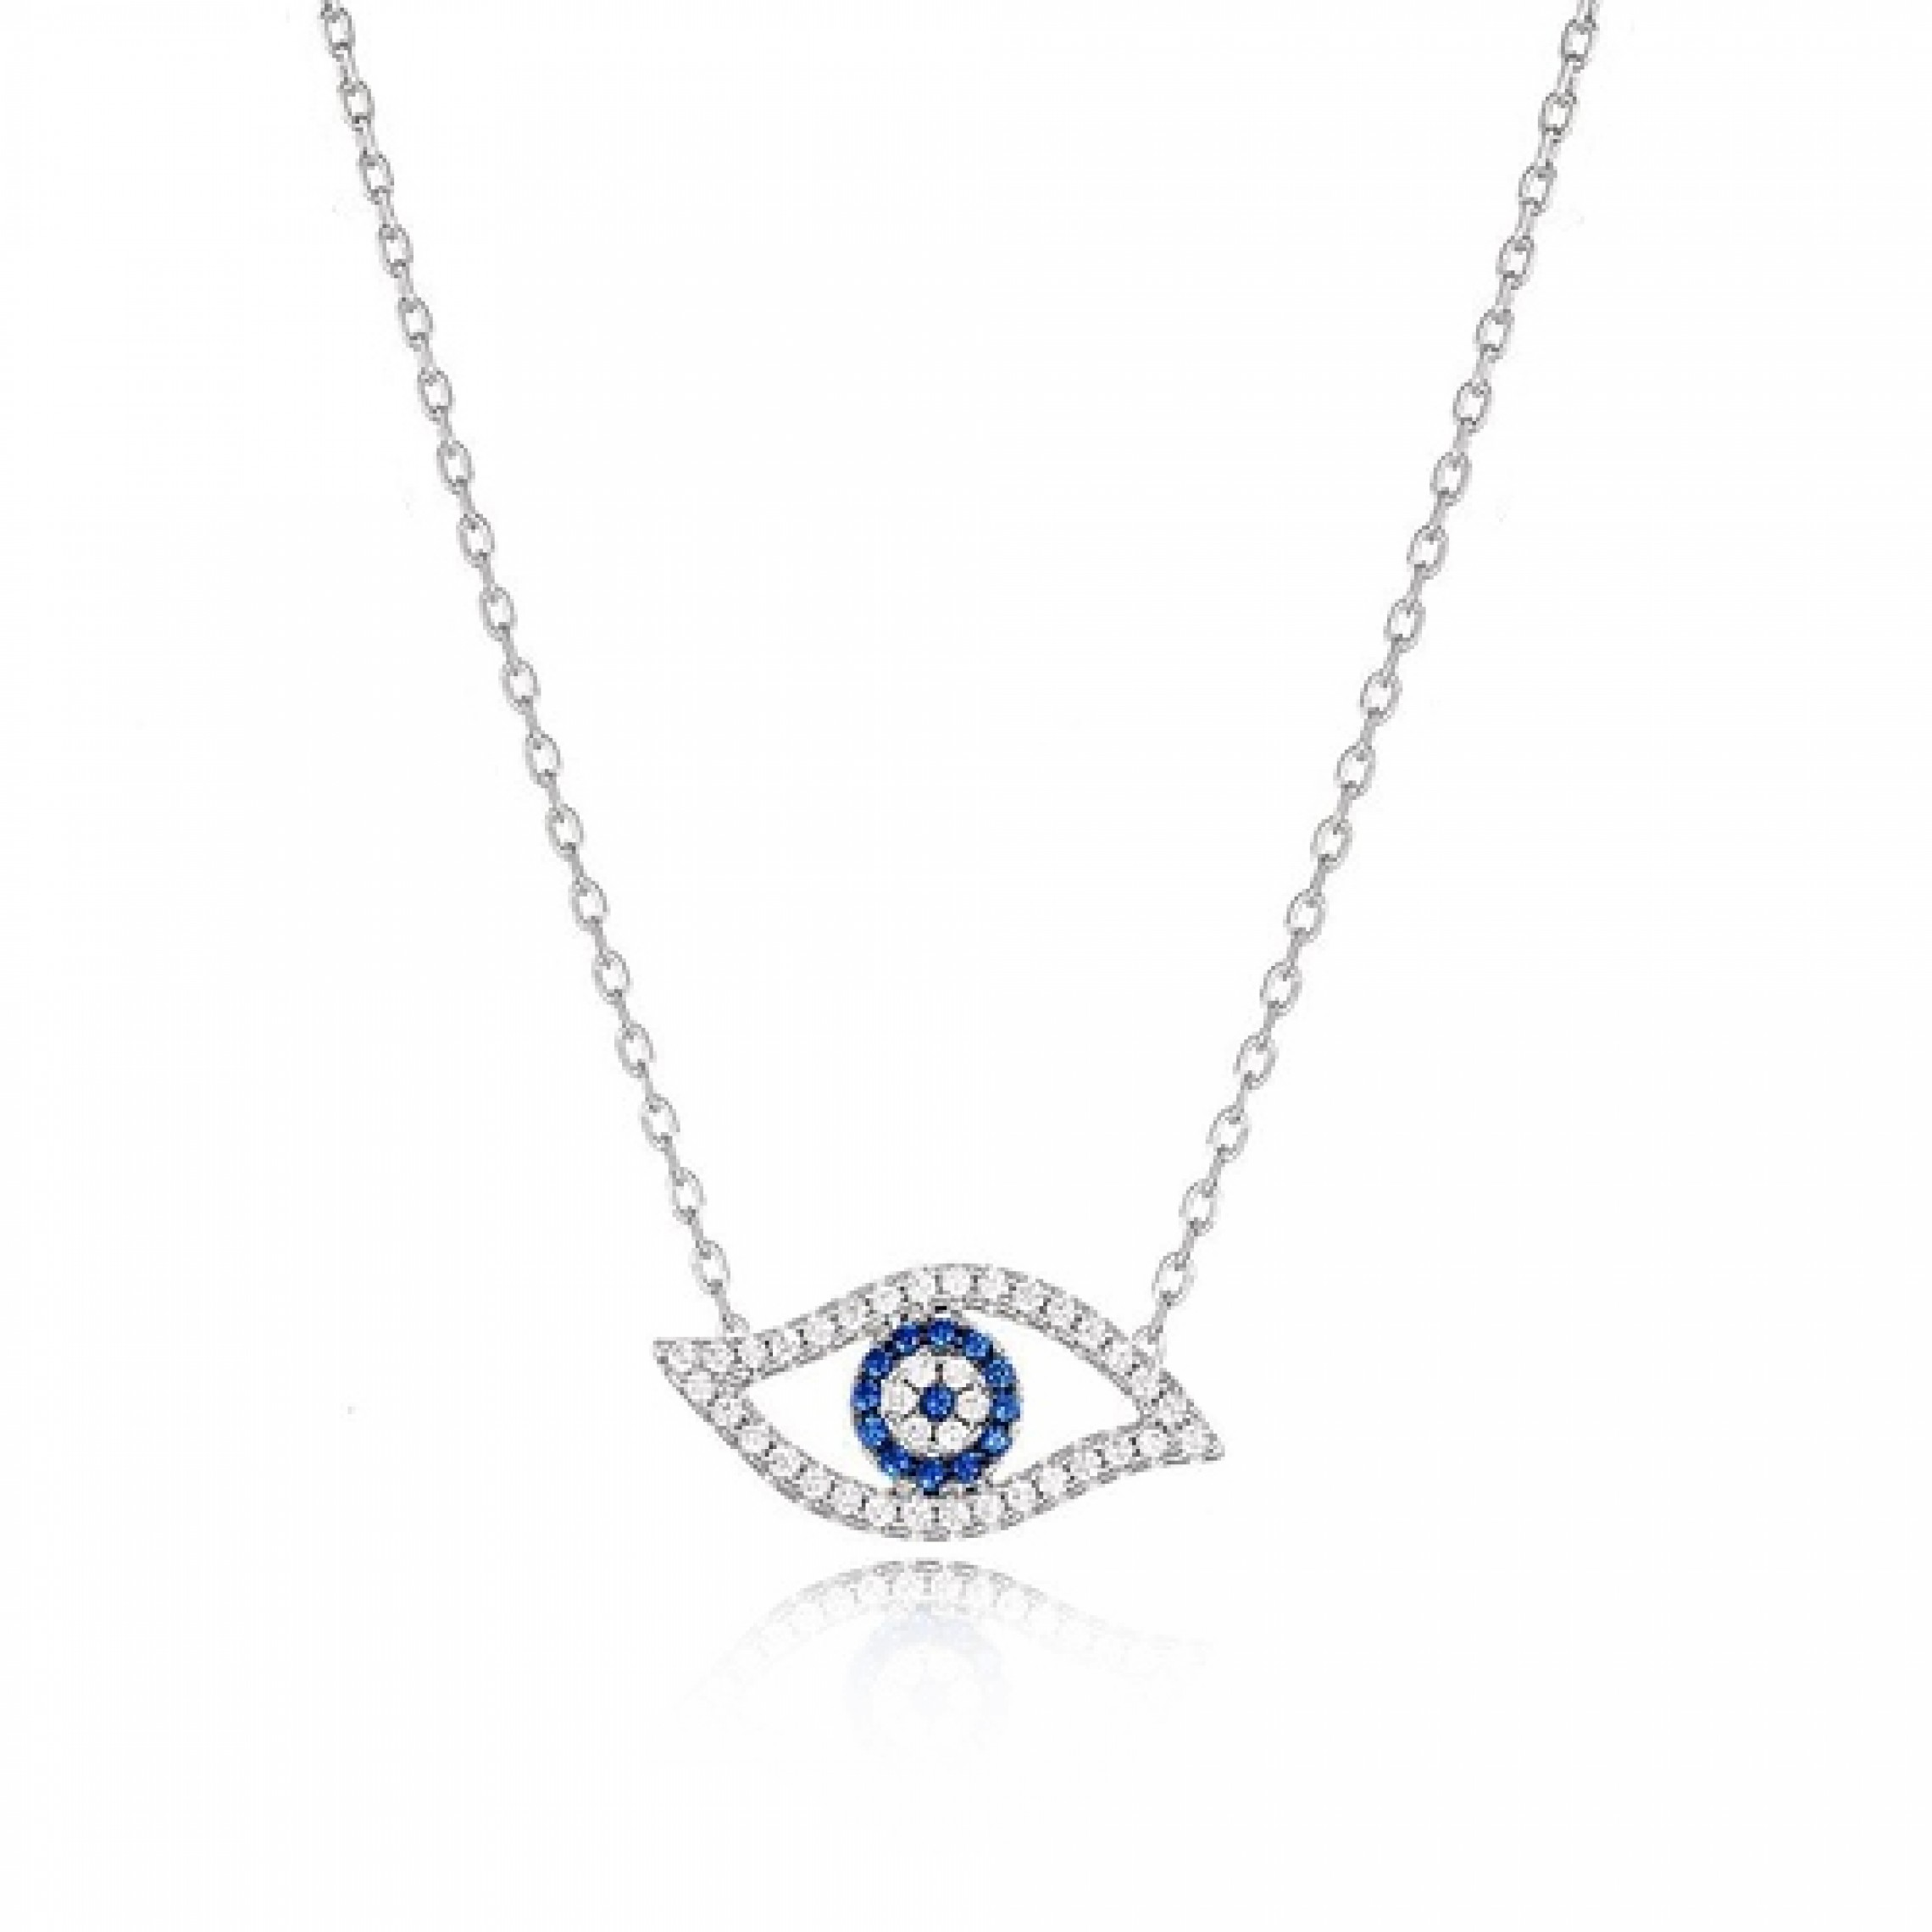 JN-190180 Evil Eye 925 Sterling Silver CZ Necklace Evil Eyes